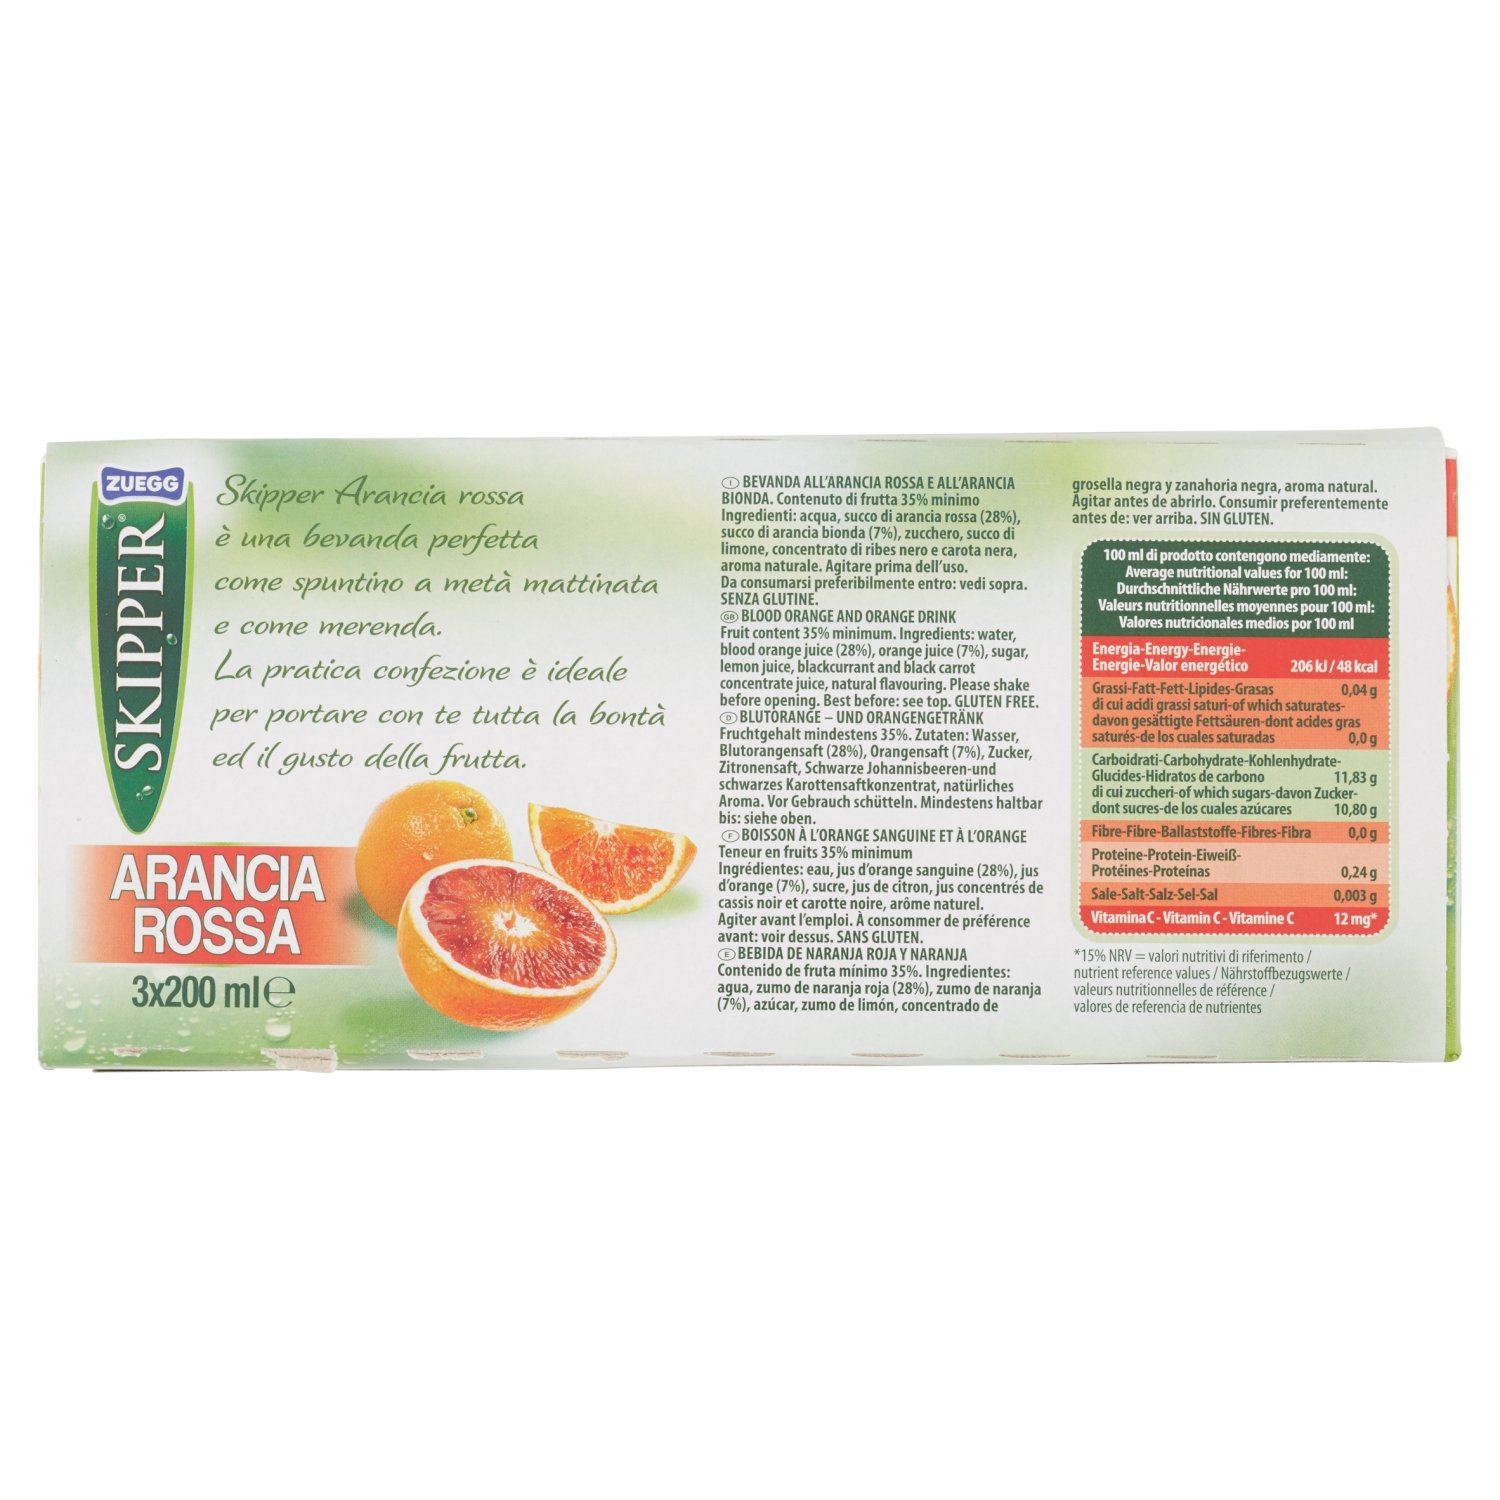 Amazon.com : Zuegg :Skipper Blood Orange and Orange Drink, Brick Pack of 3 x 200 ml / 6.76 oz : Grocery & Gourmet Food